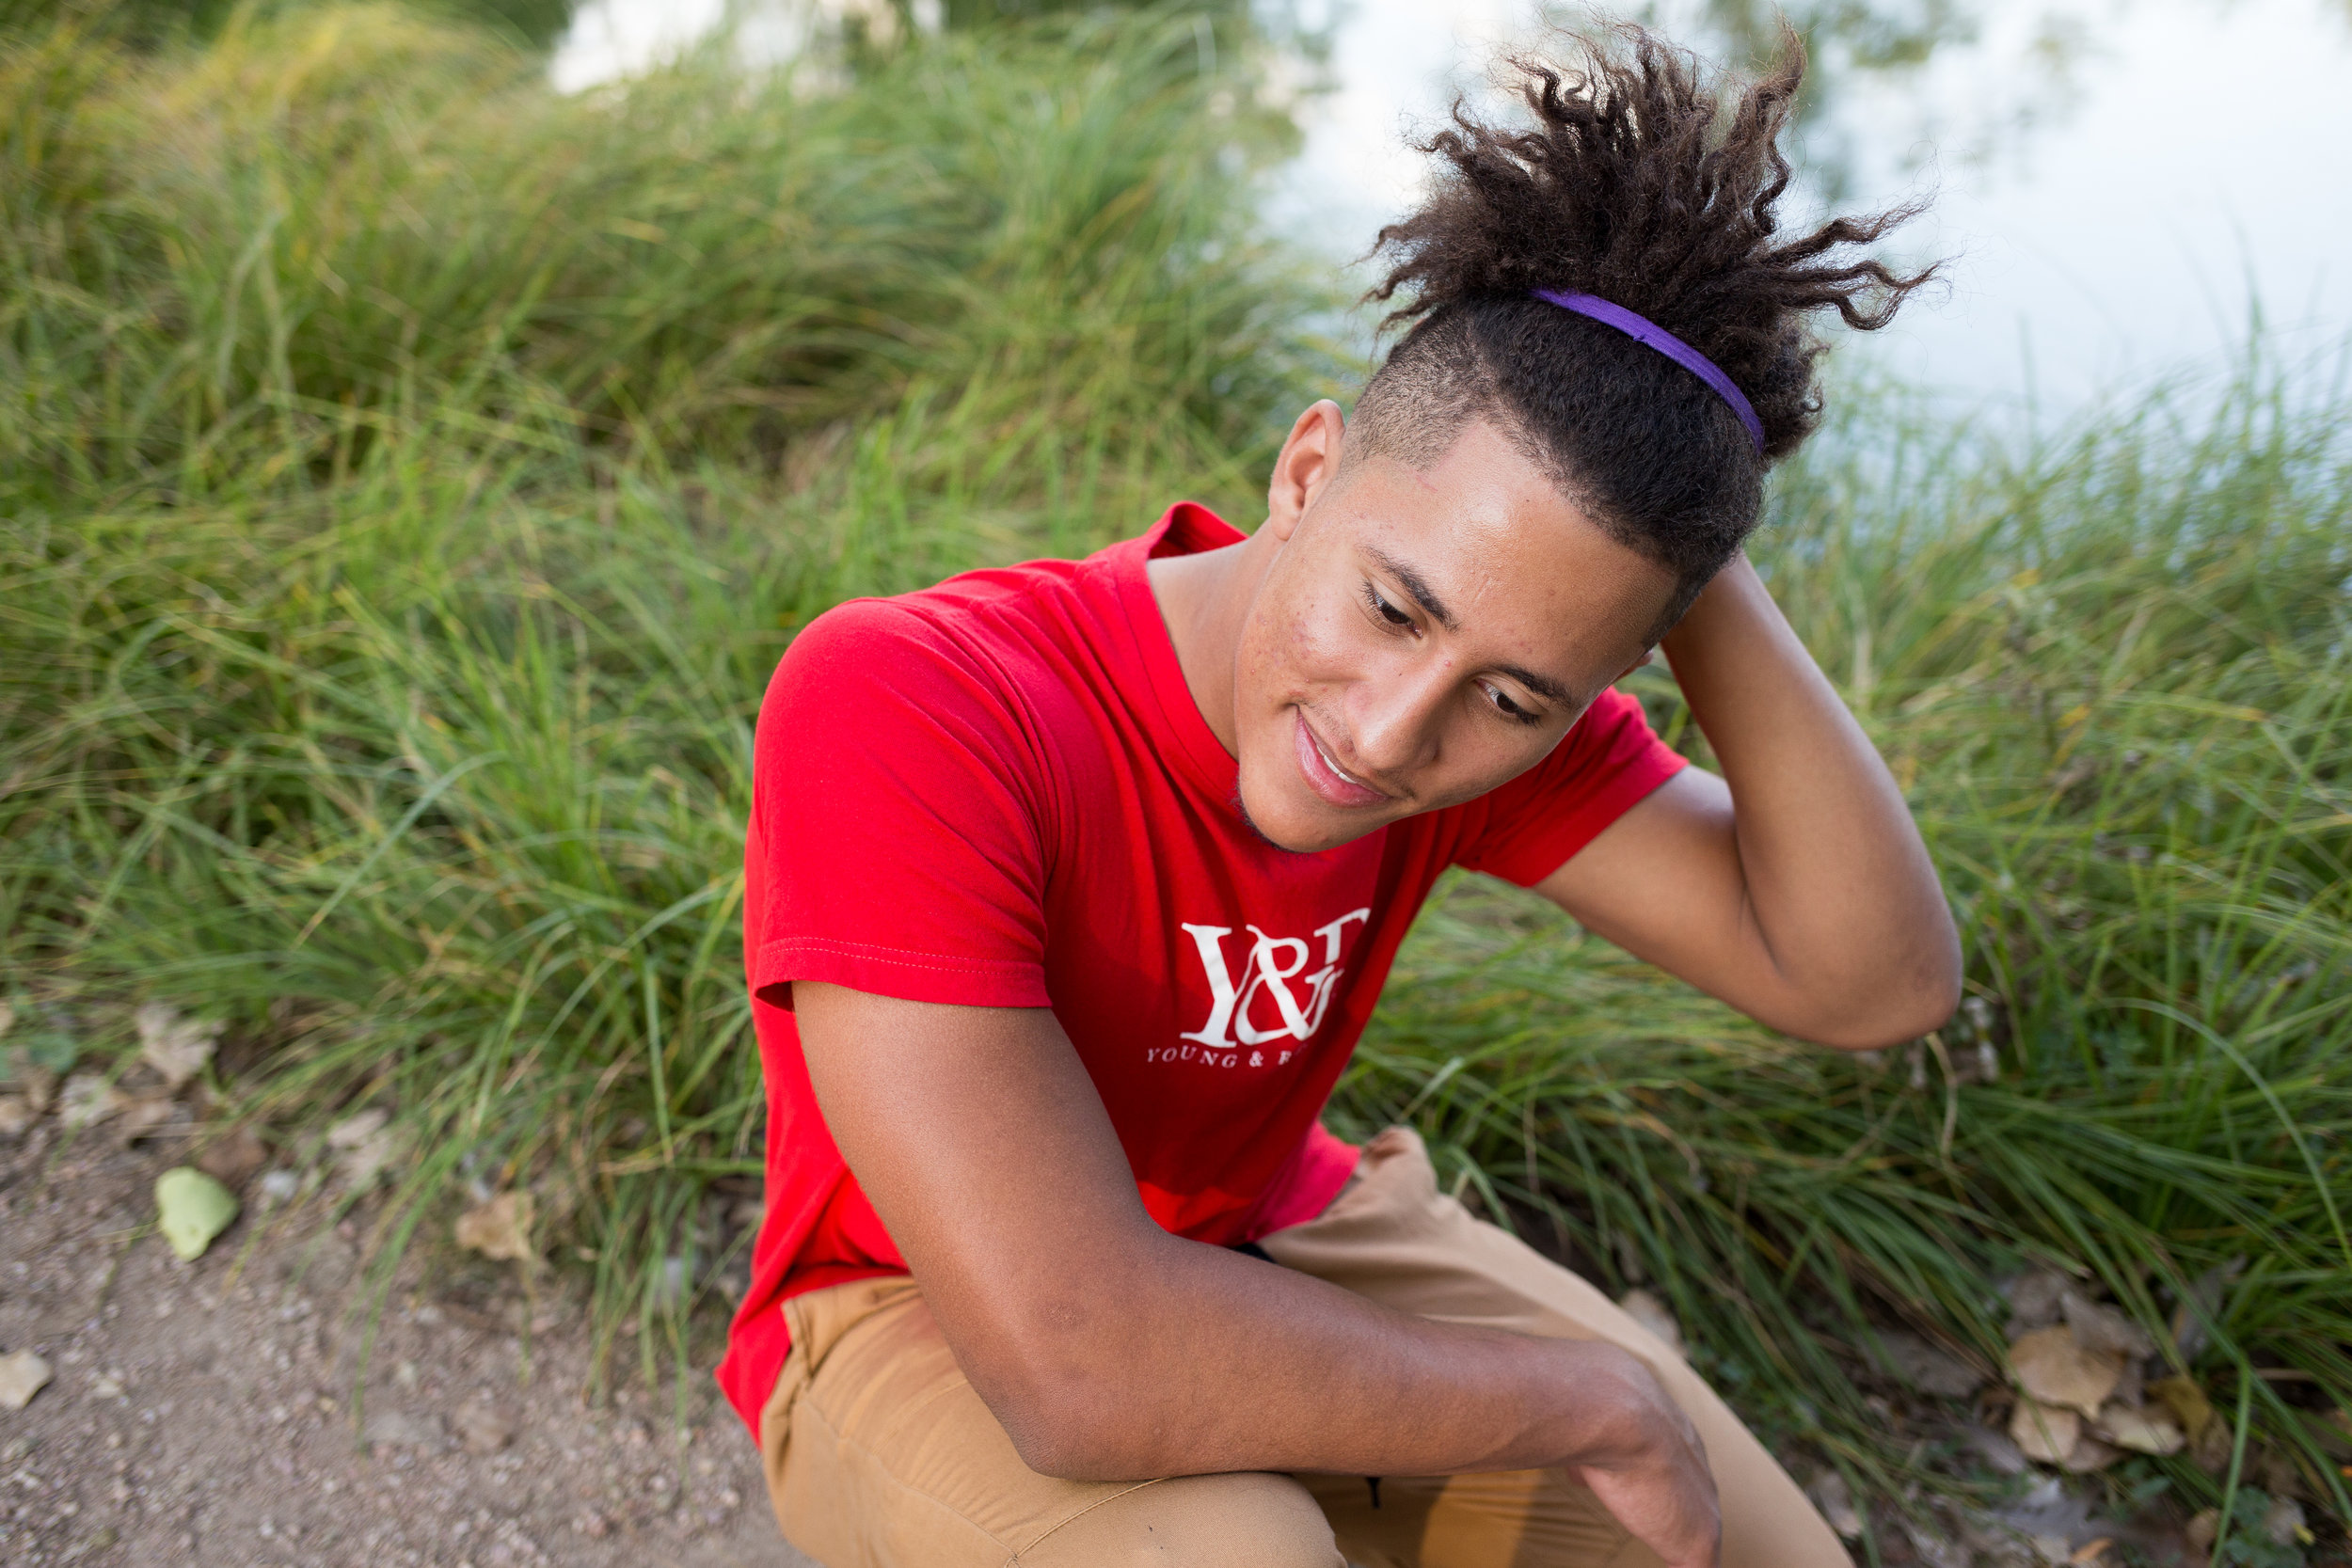 Senior boy in red shirt kneeling and looking at the ground while running his hand through his hair in Monument valley Park Stacy Carosa Photography Colorado Springs Senior Photography